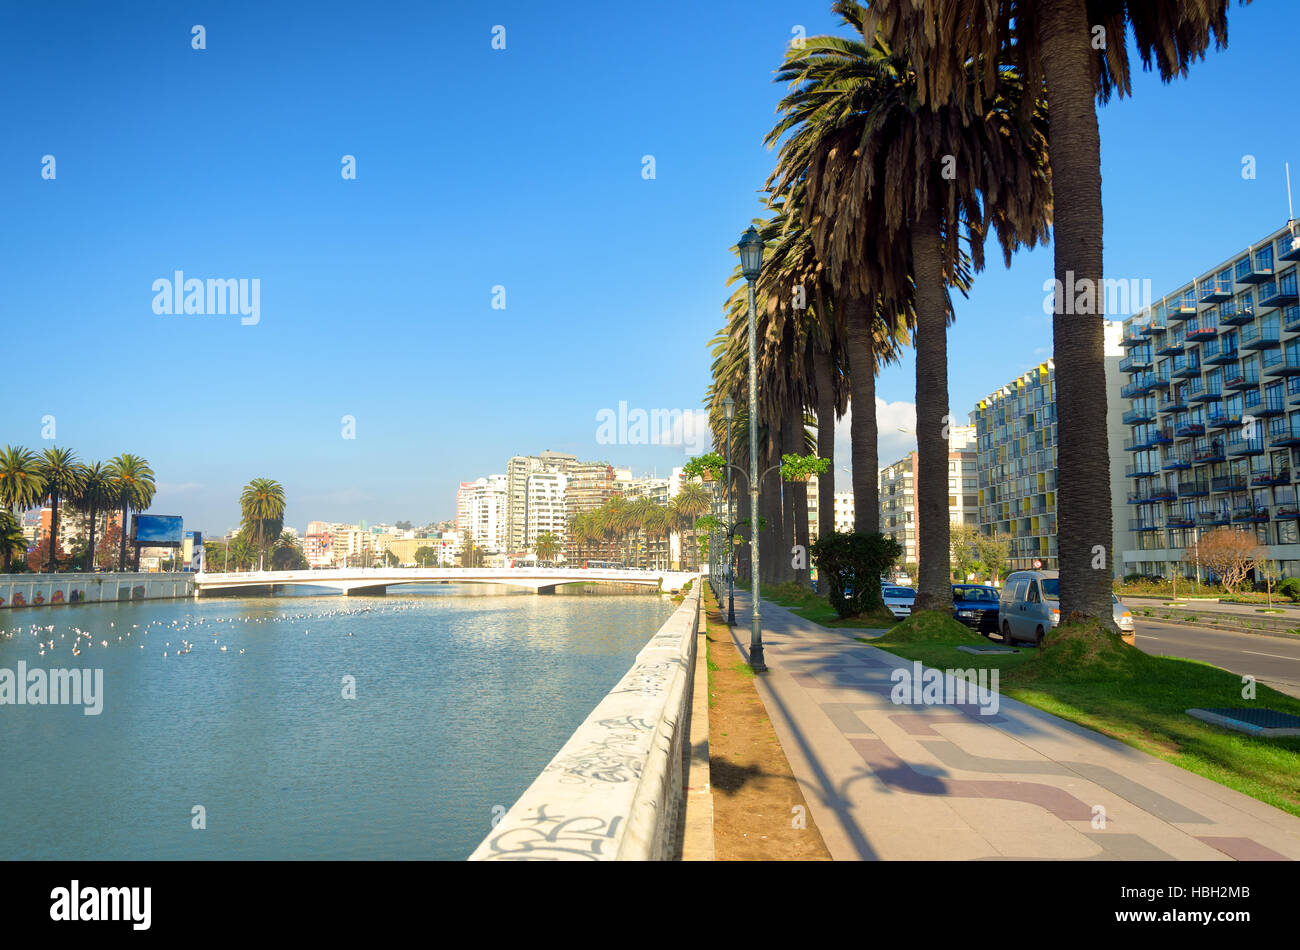 Walk or bicycle your way along the esplanade in Vina del Mar, Chile - Stock Image